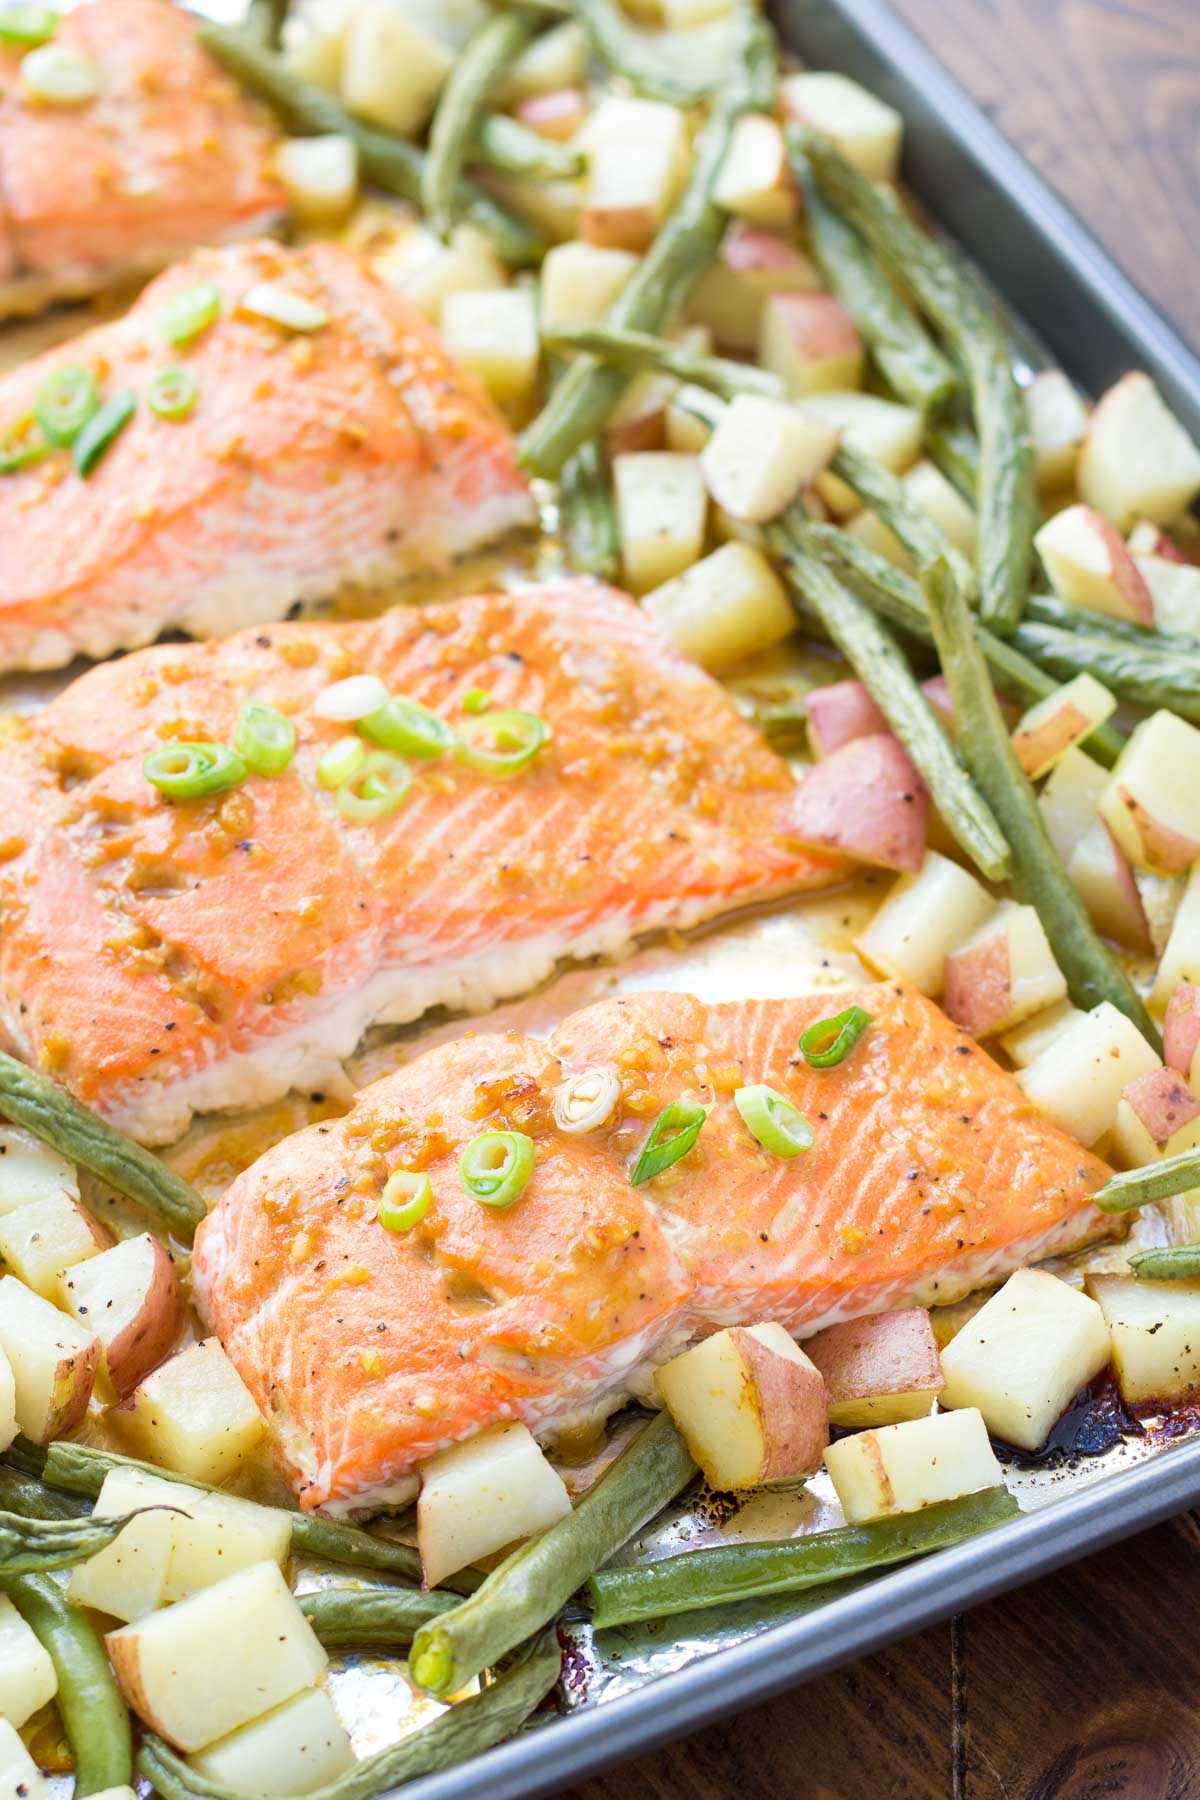 Honey garlic salmon with potatoes and green beans on a sheet pan